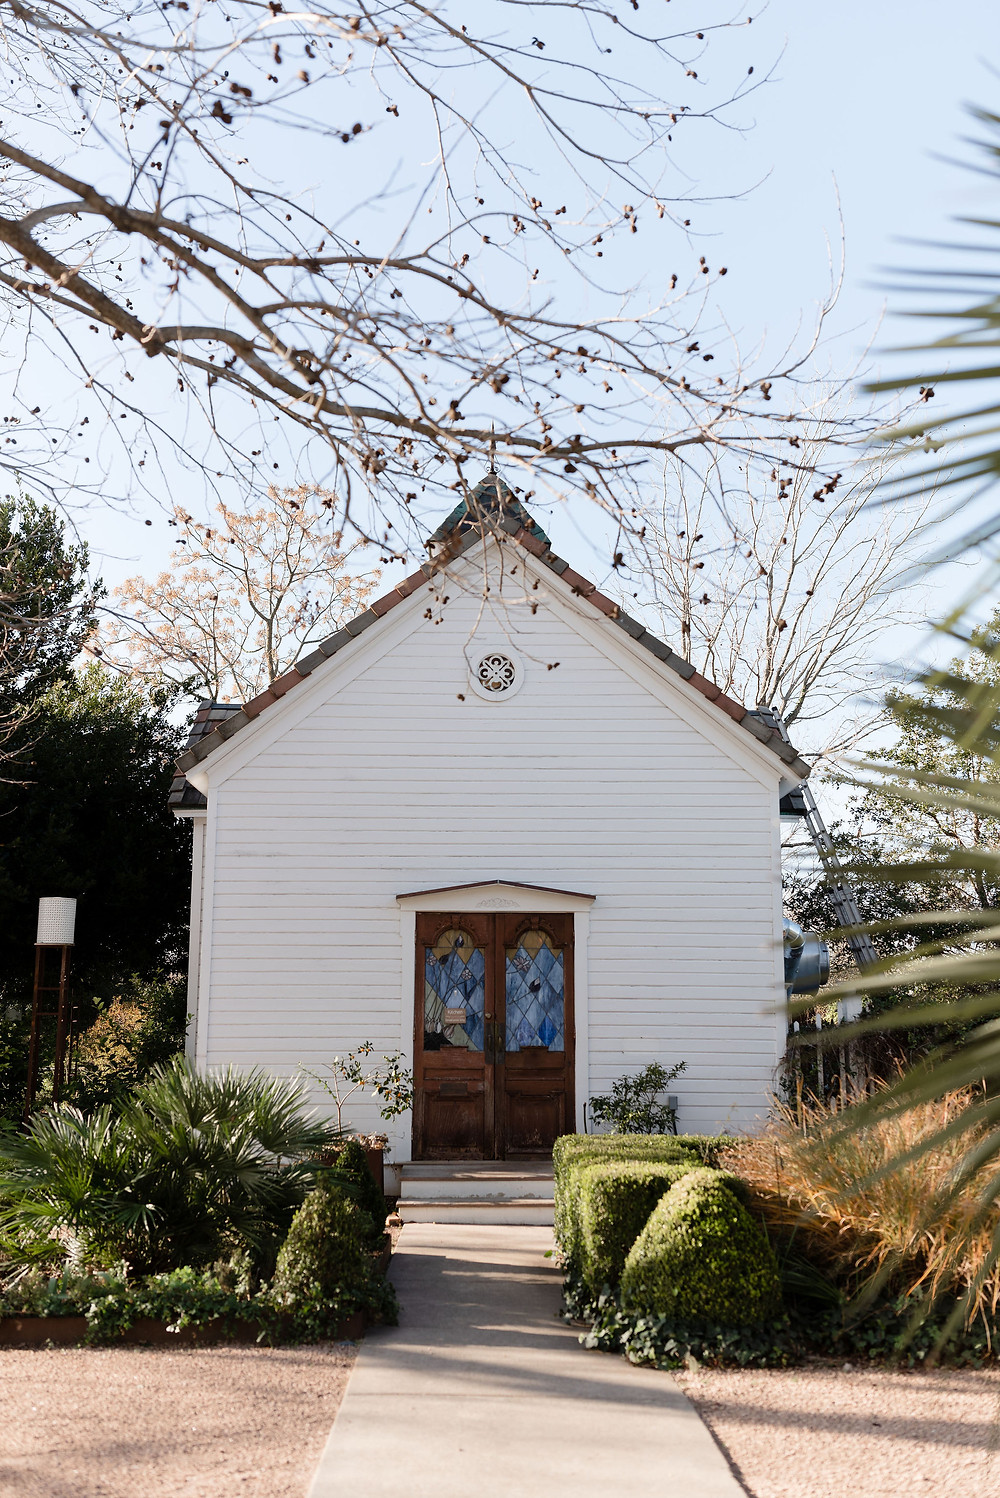 small white building that resembles a chapel. it is the kitchen at barr mansion. there are two wooden doors in the middle of the building that have stained glass windows. There are beautiful bushes and trees surrounding the perimeter